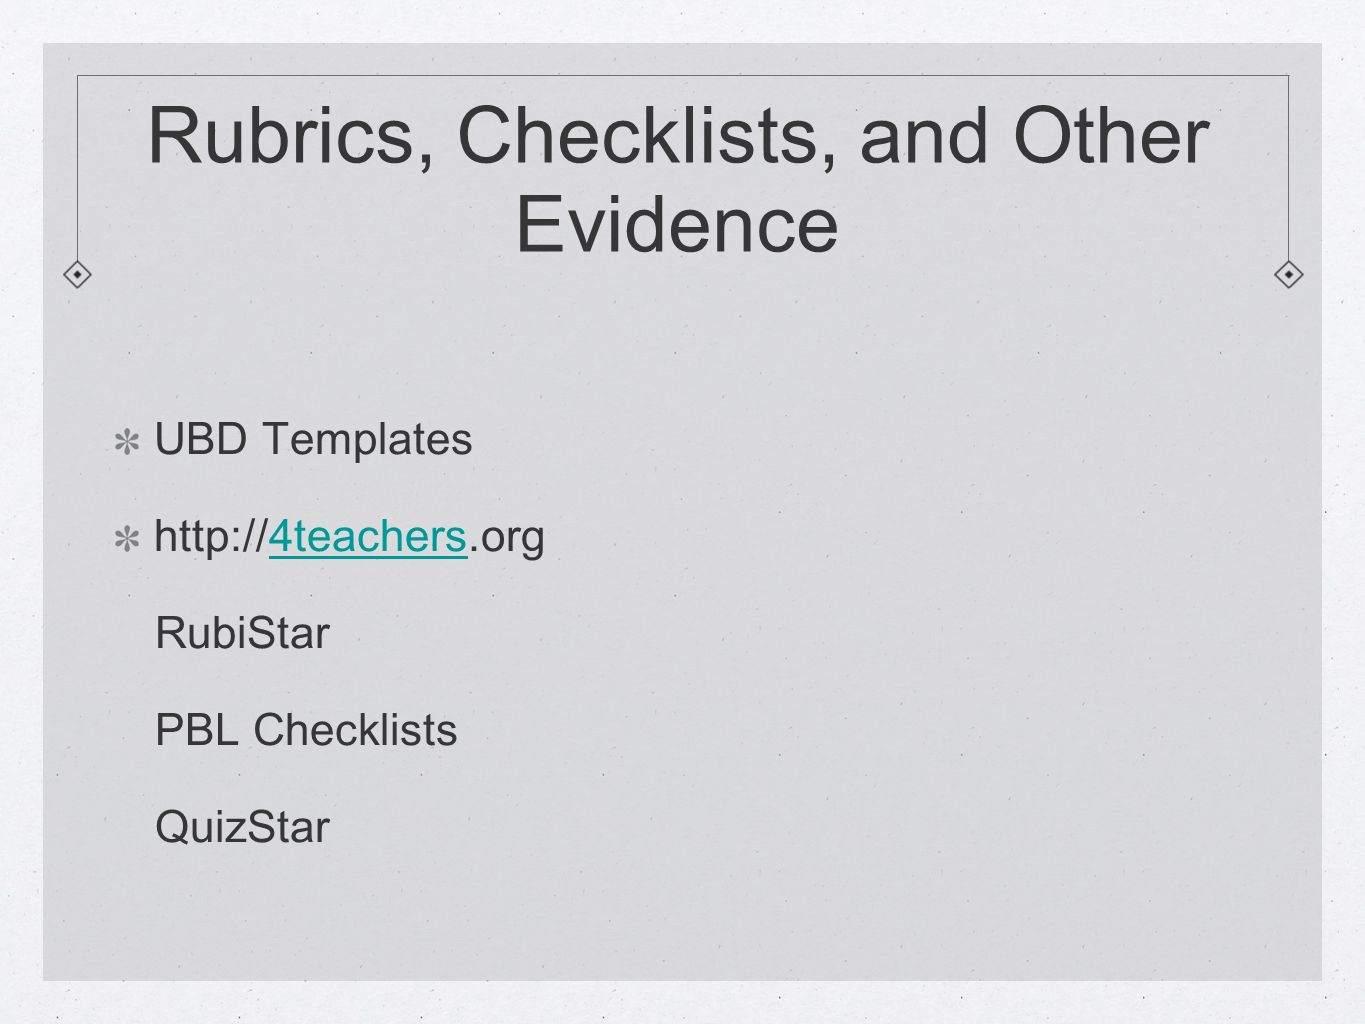 Rubrics, Checklists, and Other Evidence UBD Templates http://4teachers.org4teachers RubiStar PBL Checklists QuizStar